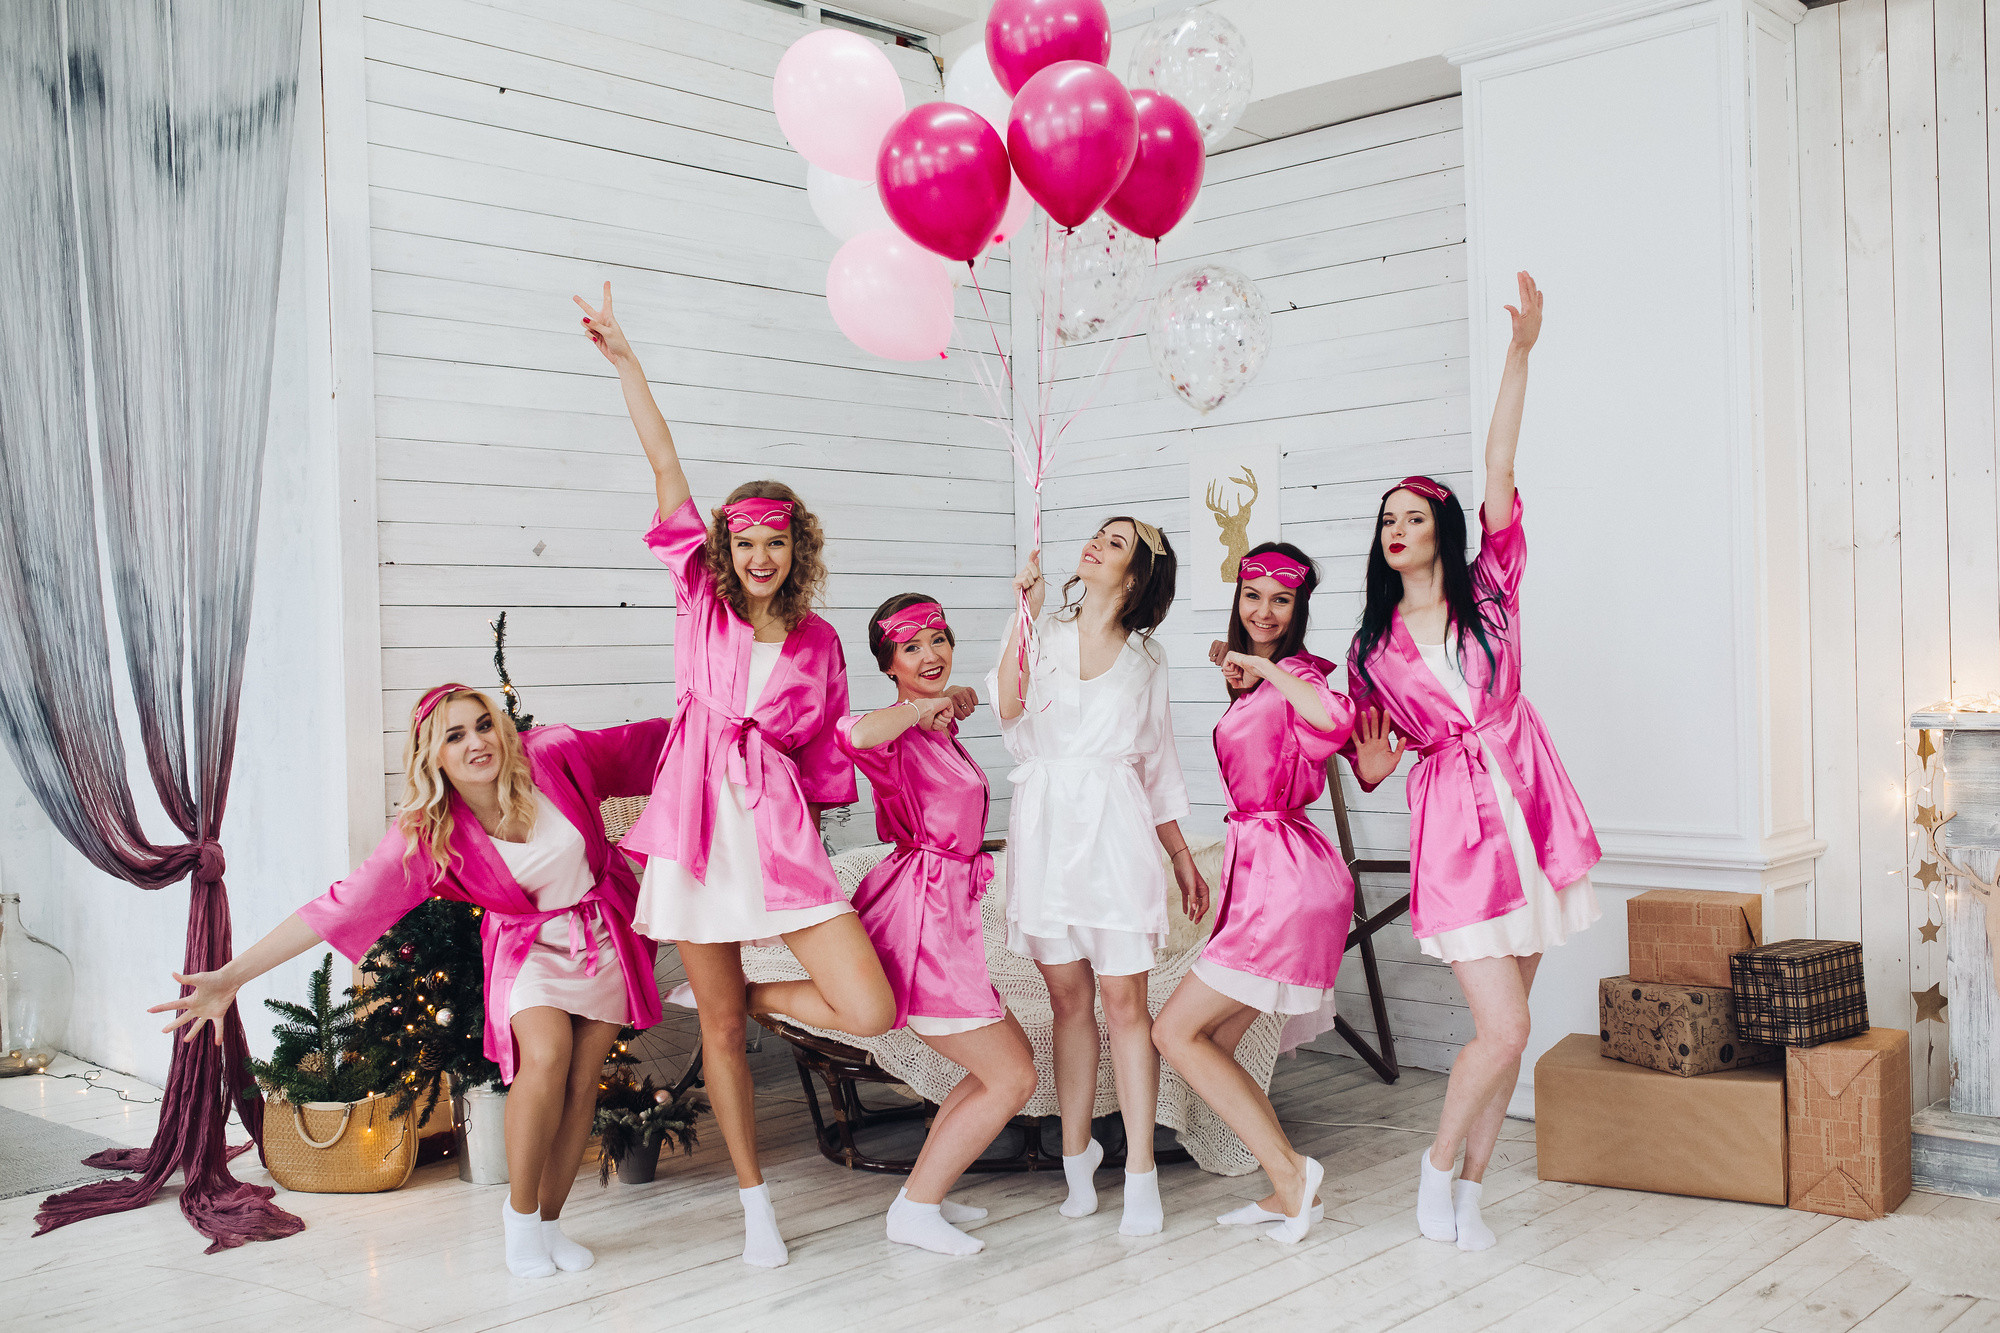 Fun Bachelorette Party Ideas  10 Crazy Fun Bachelorette Party Ideas